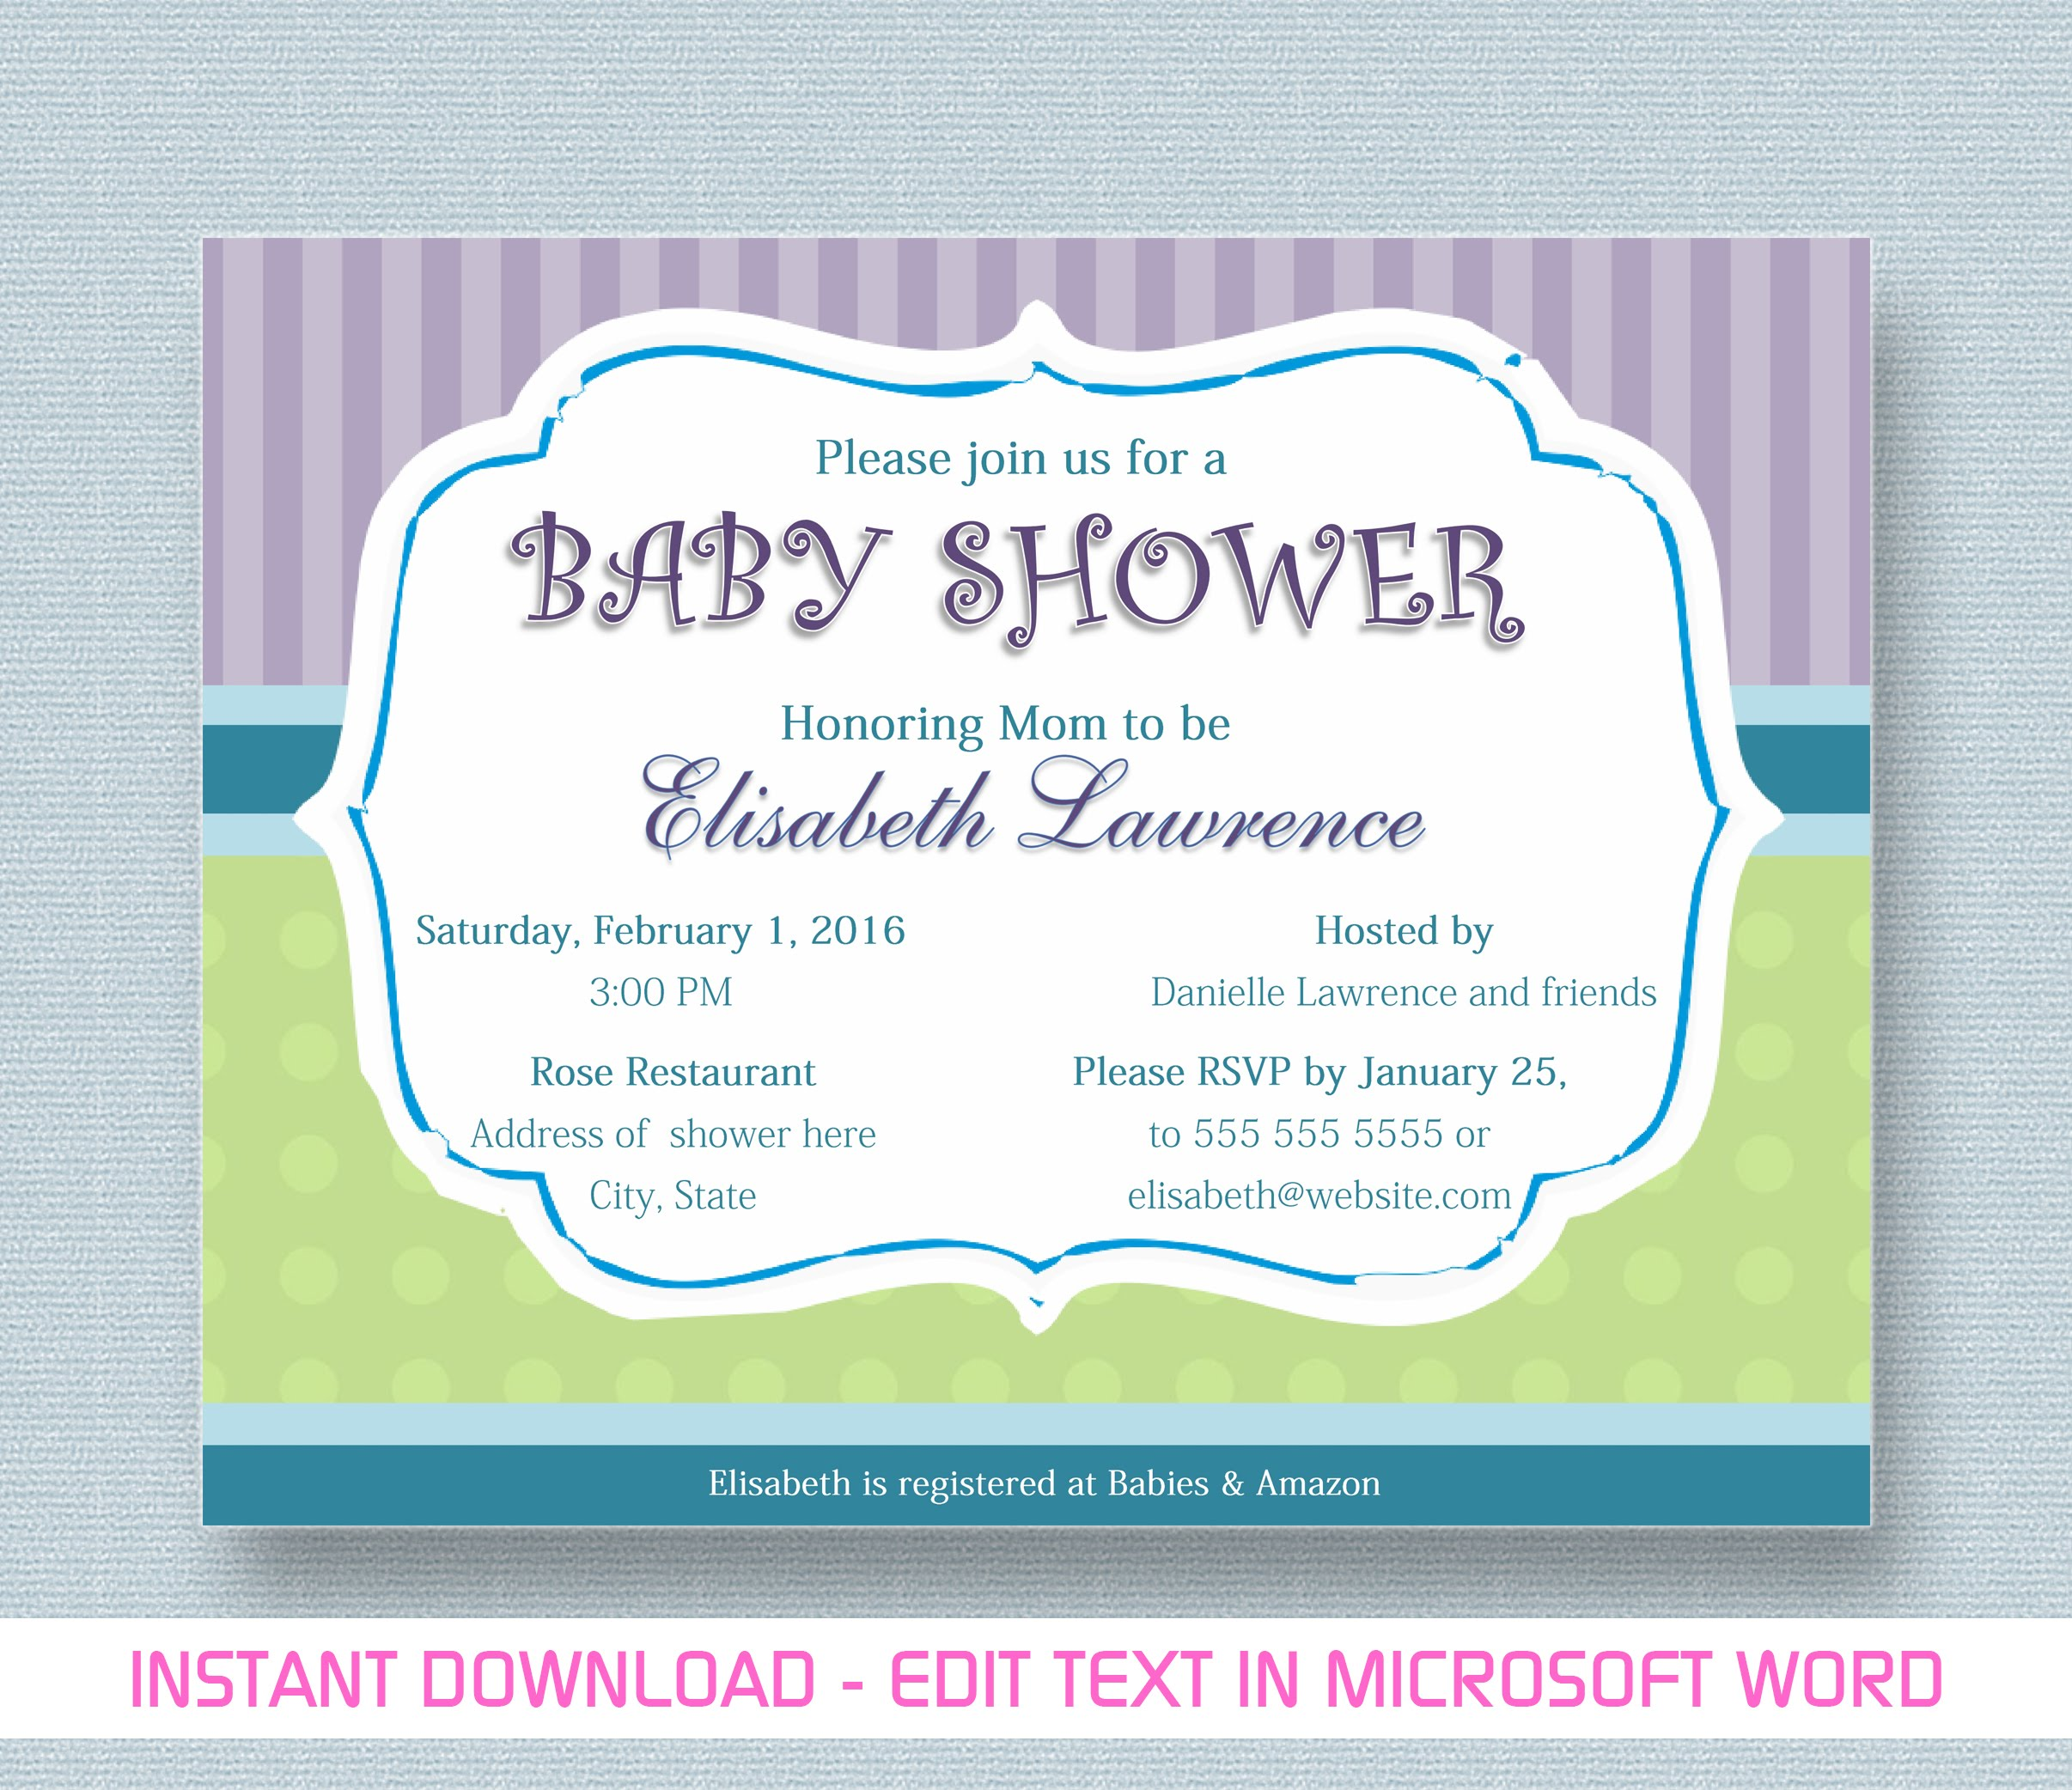 Full Size of Baby Shower:sturdy Baby Shower Invitation Template Image Concepts Save The Date Baby Shower Baby Shower Para Niño Baby Shower Rentals Baby Shower Registry Baby Shower Favors To Make